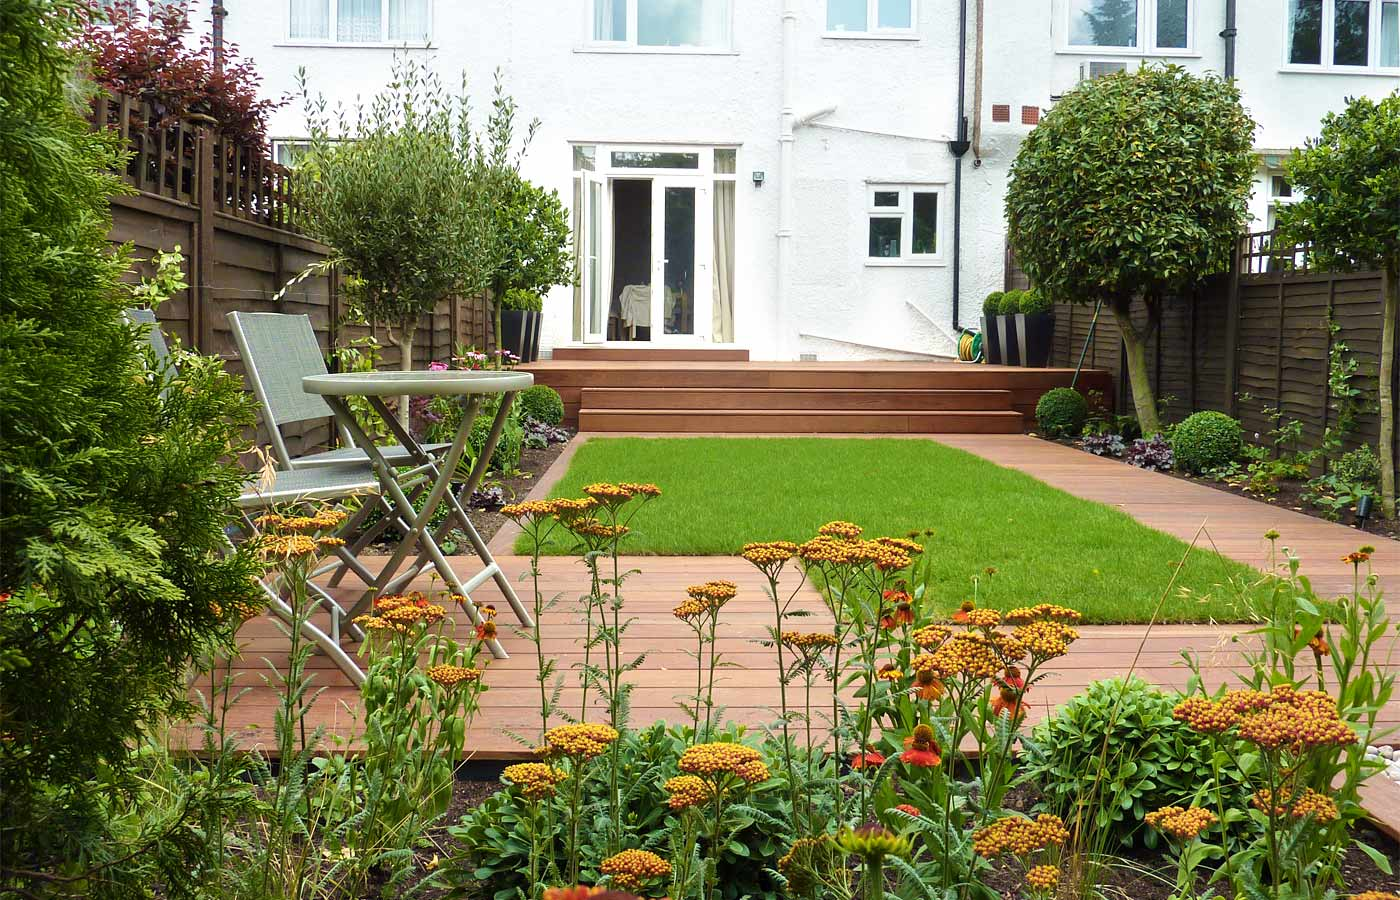 Contemporary garden design london - Garden ideas london ...